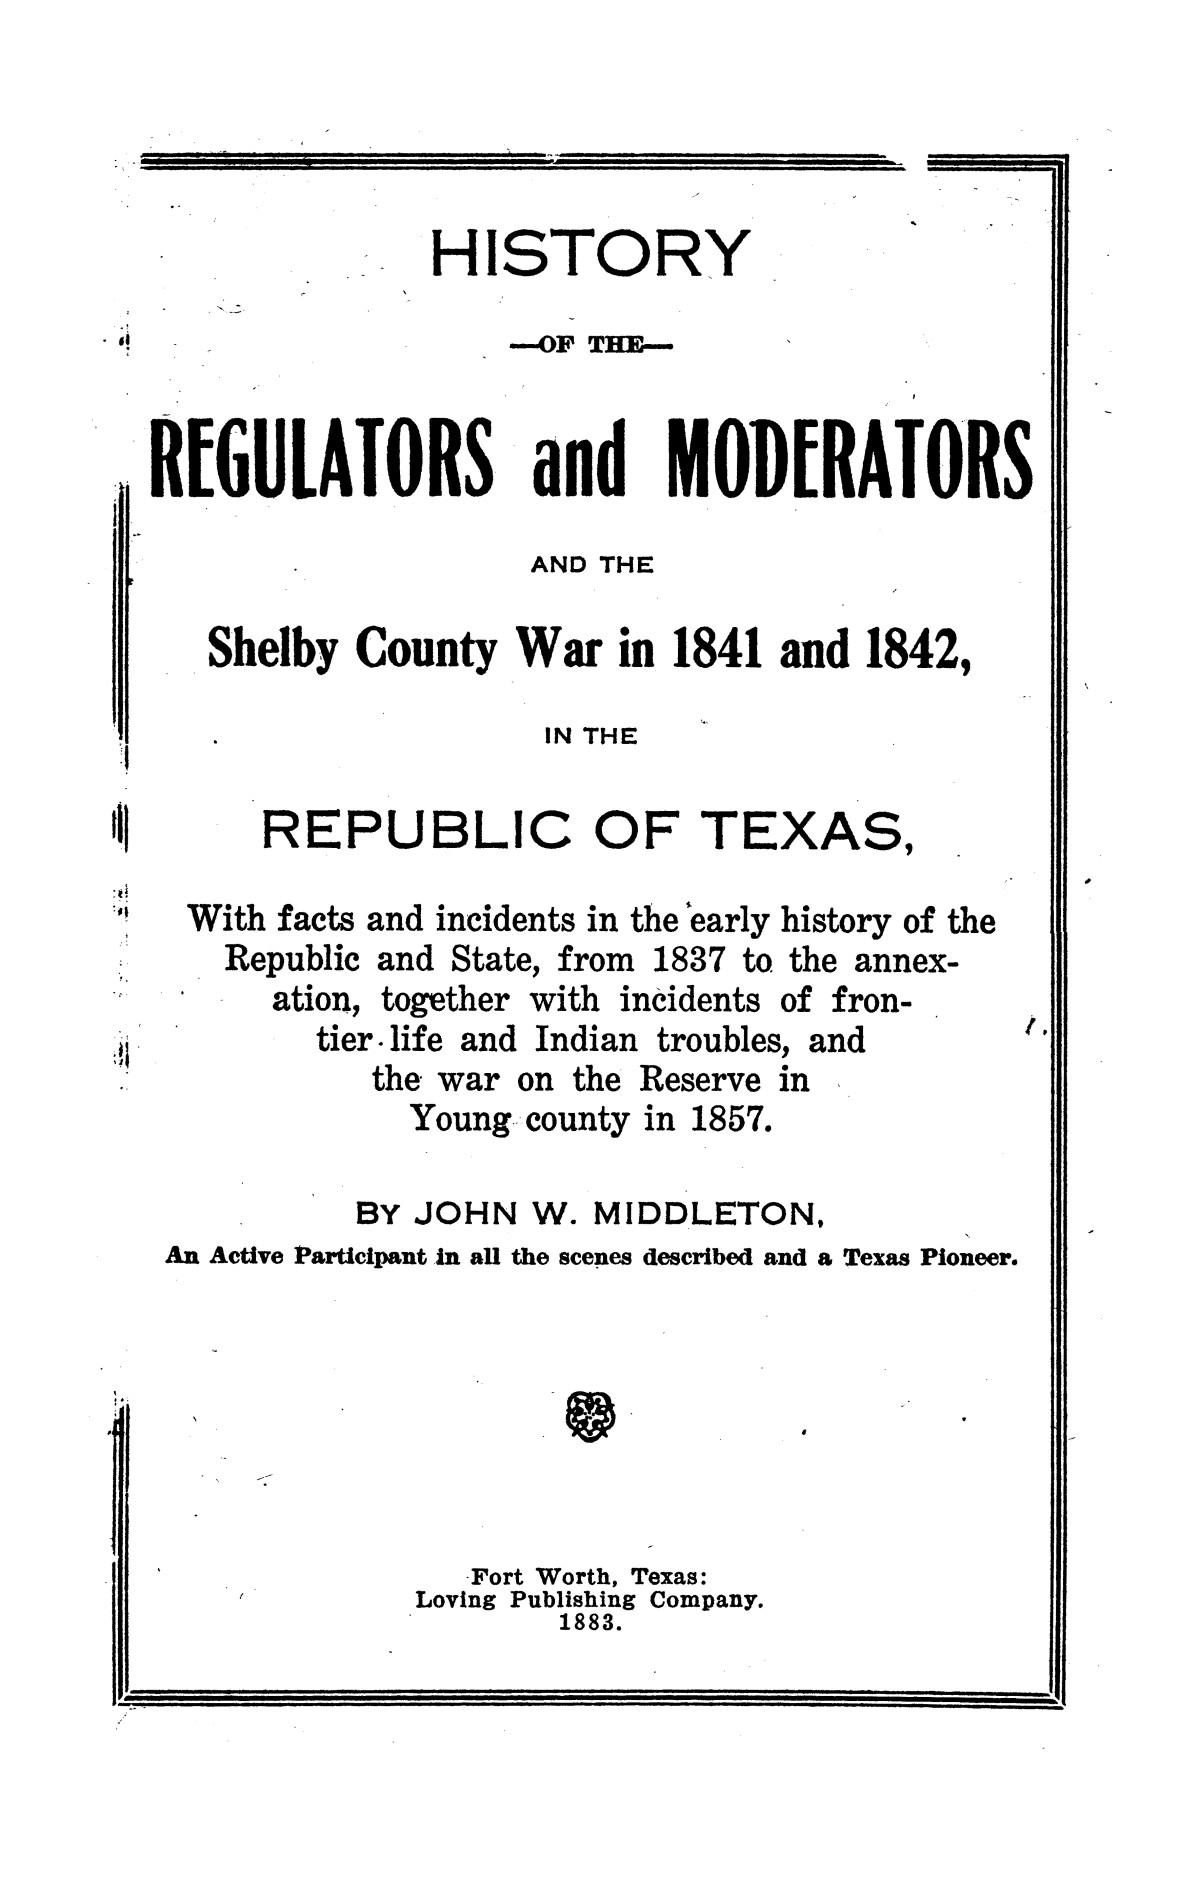 History of the regulators and moderators and the Shelby County war in 1841 and 1842, in the republic of Texas, with facts and incidents in the early history of the republic and state, from 1837 to the annexation, together with incidents of frontier life and Indian troubles, and the war on the reserve in Young County in 1857                                                                                                      [Sequence #]: 1 of 42